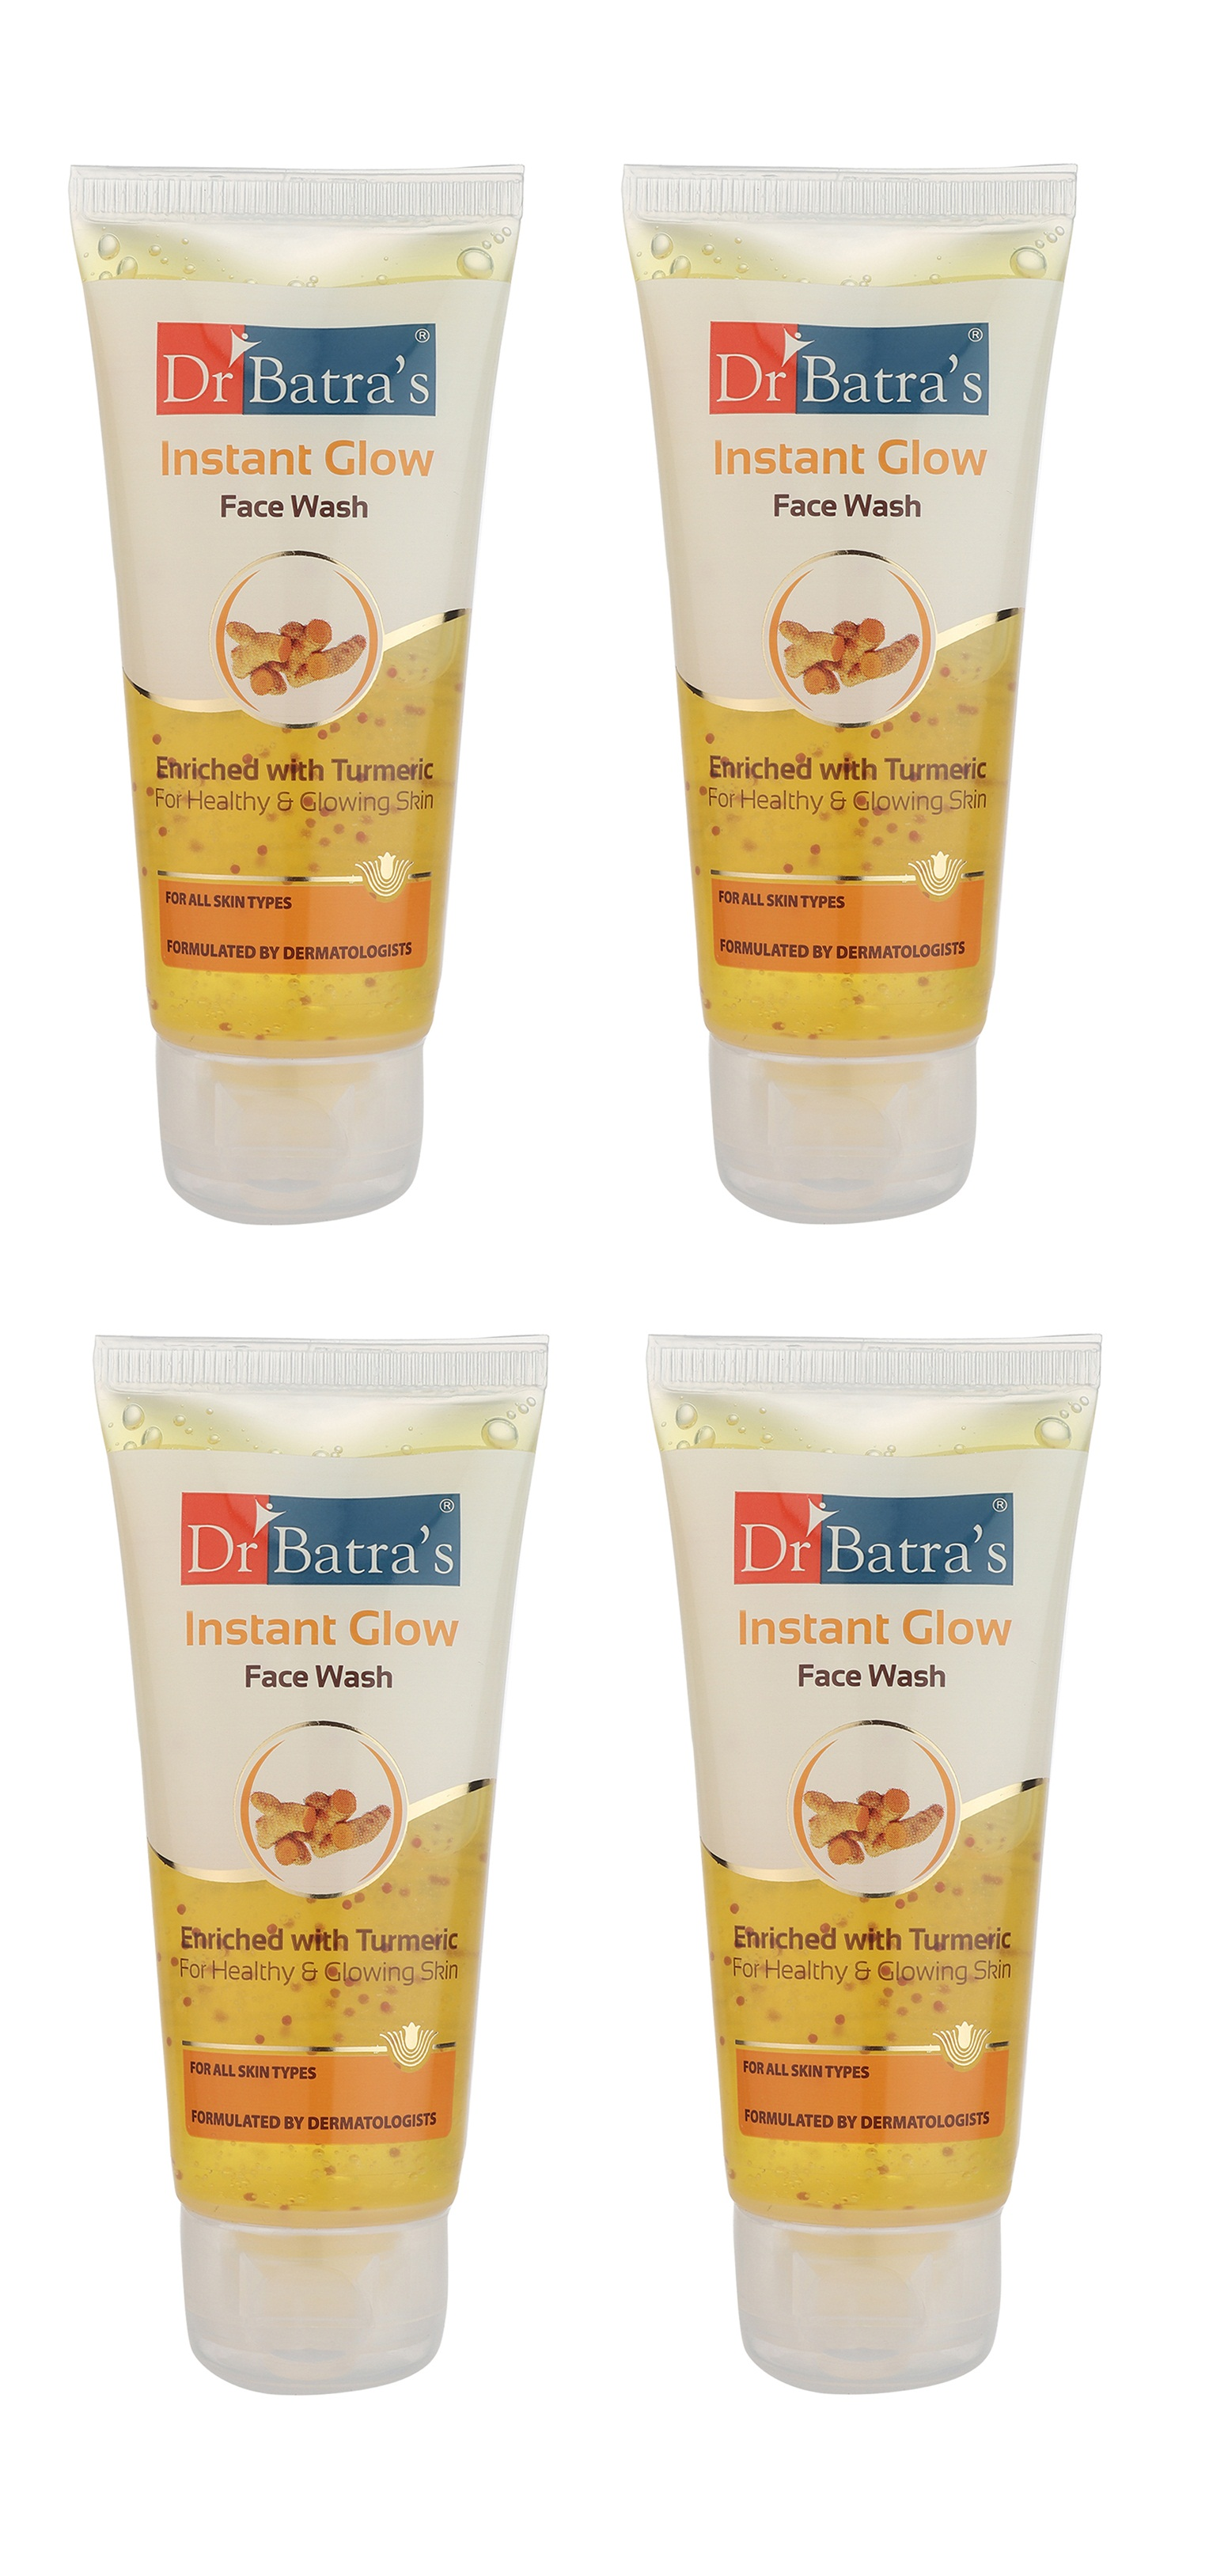 Dr Batra's | Dr Batra's Instant Glow Face Wash Enriched With Tumeric For Healthy & Glowing Skin - 50 gm (Pack of 4)